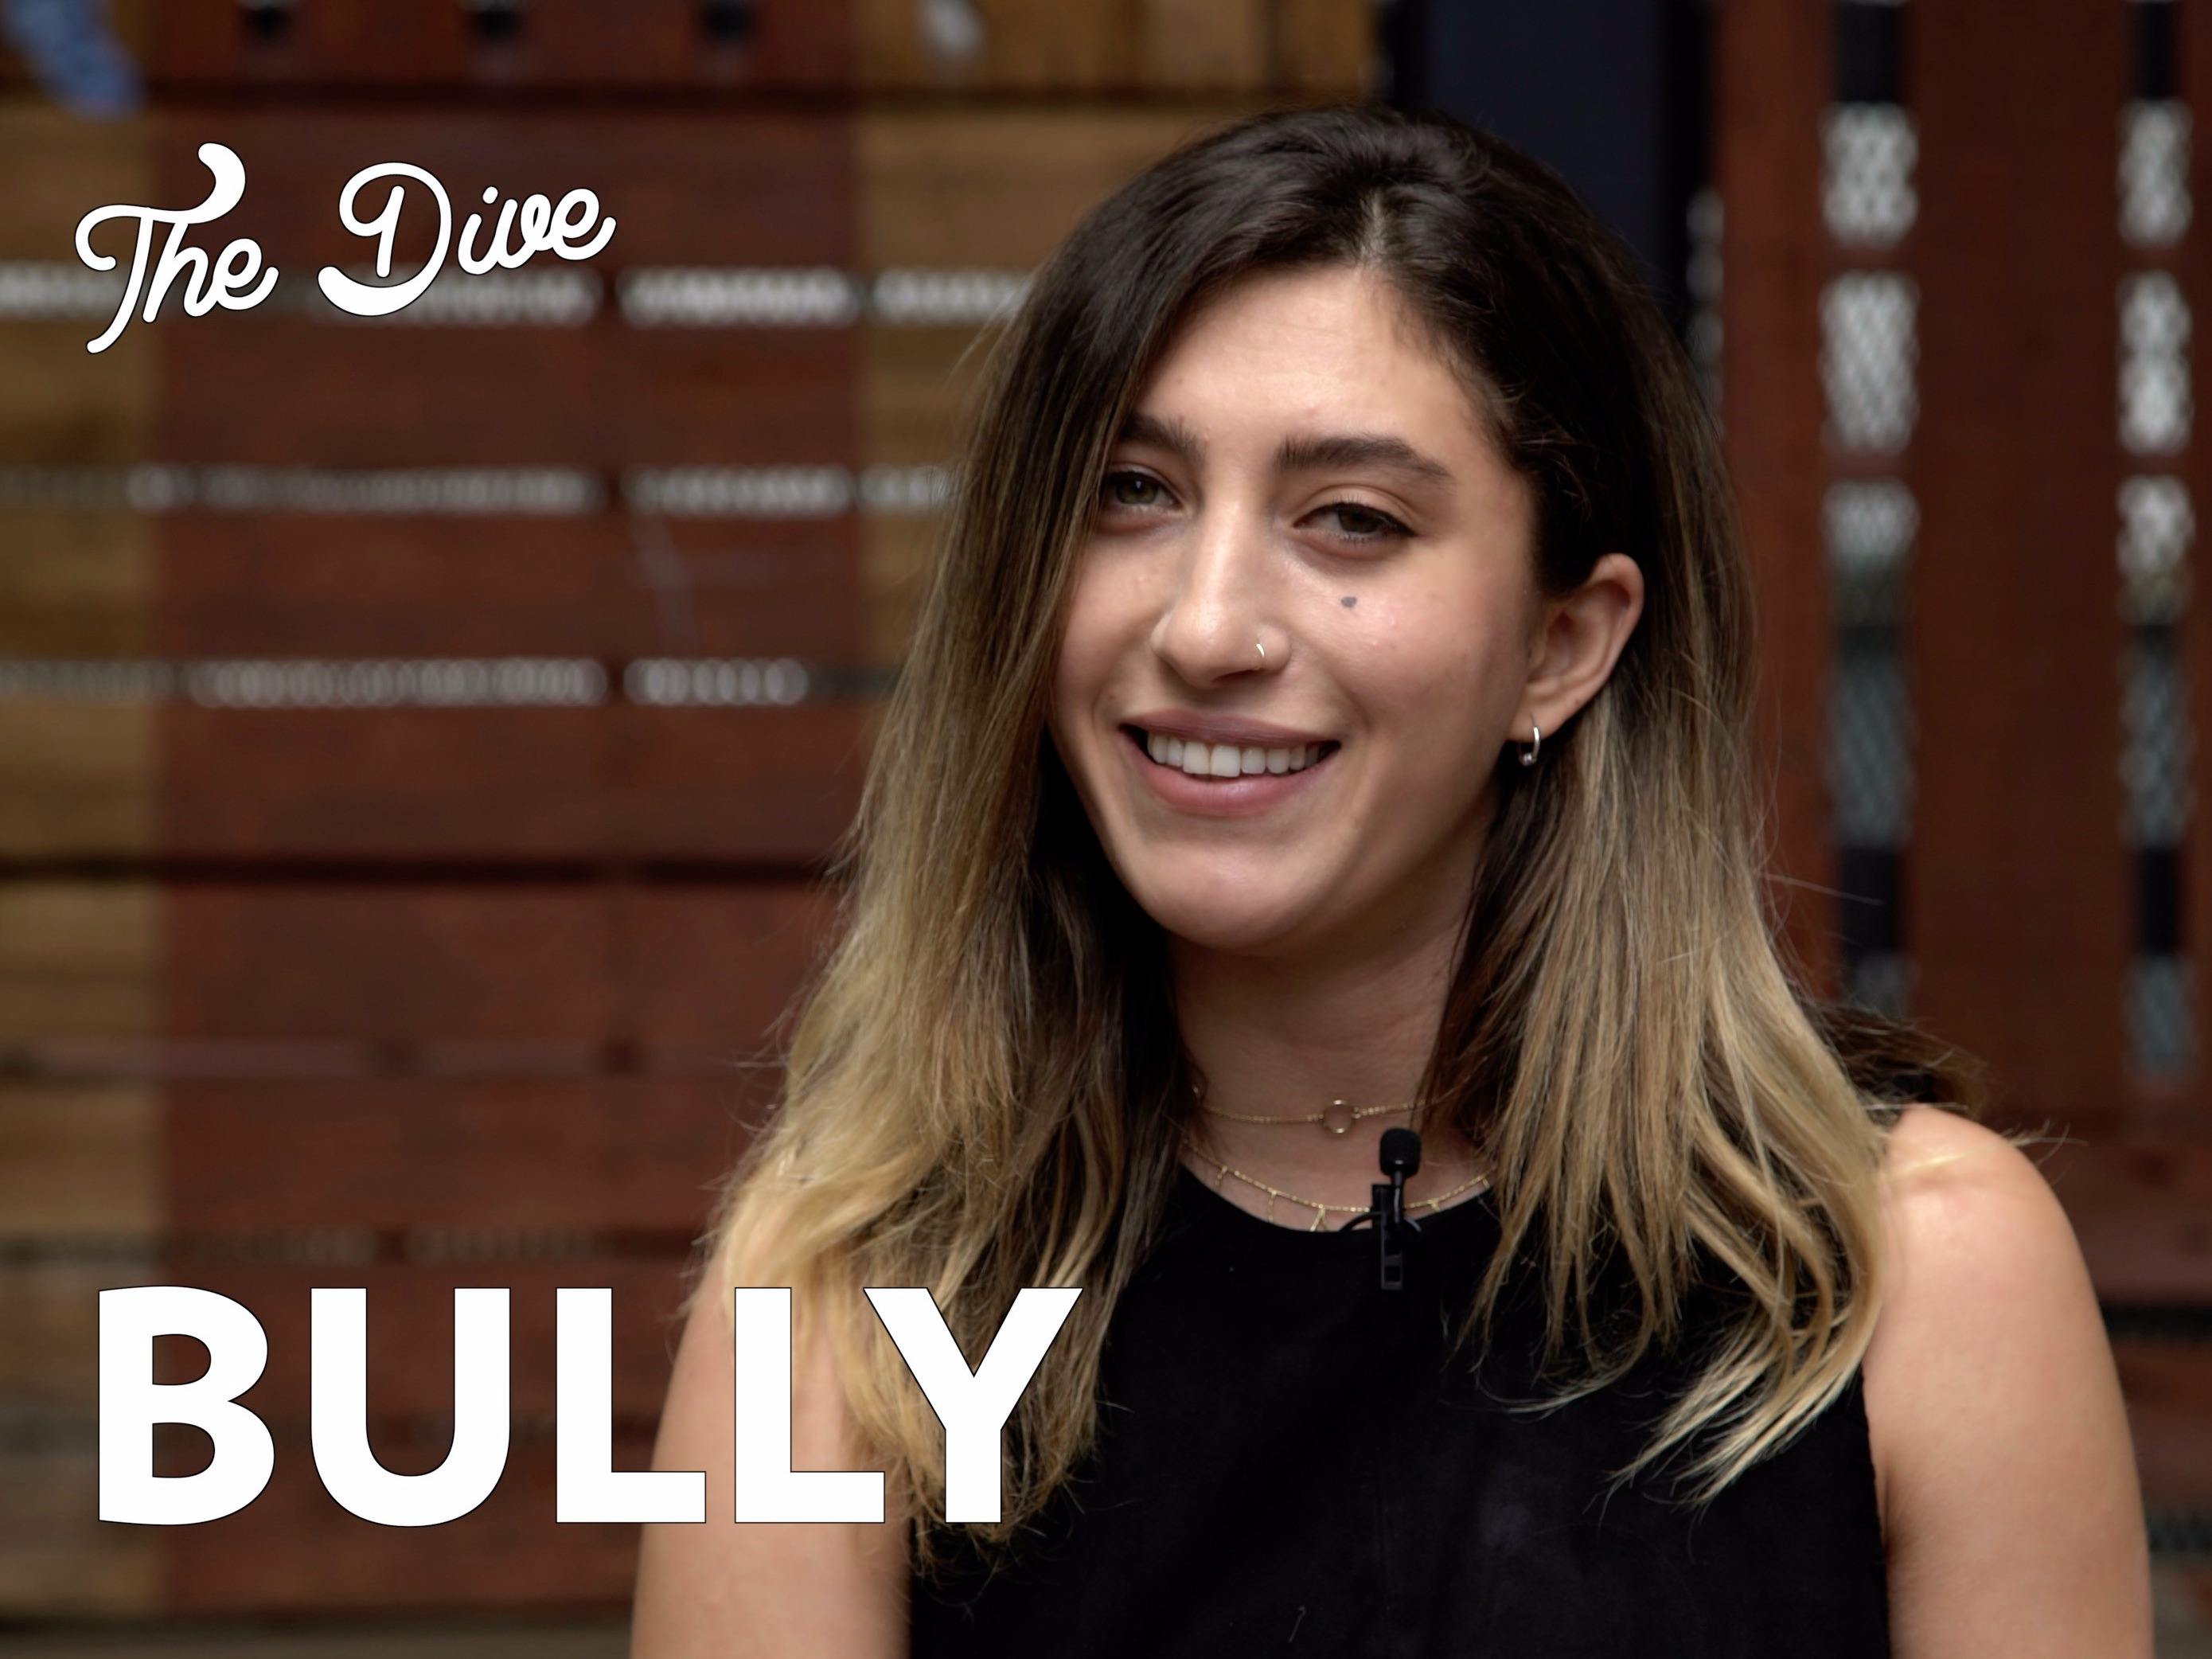 THE DIVE: Bully